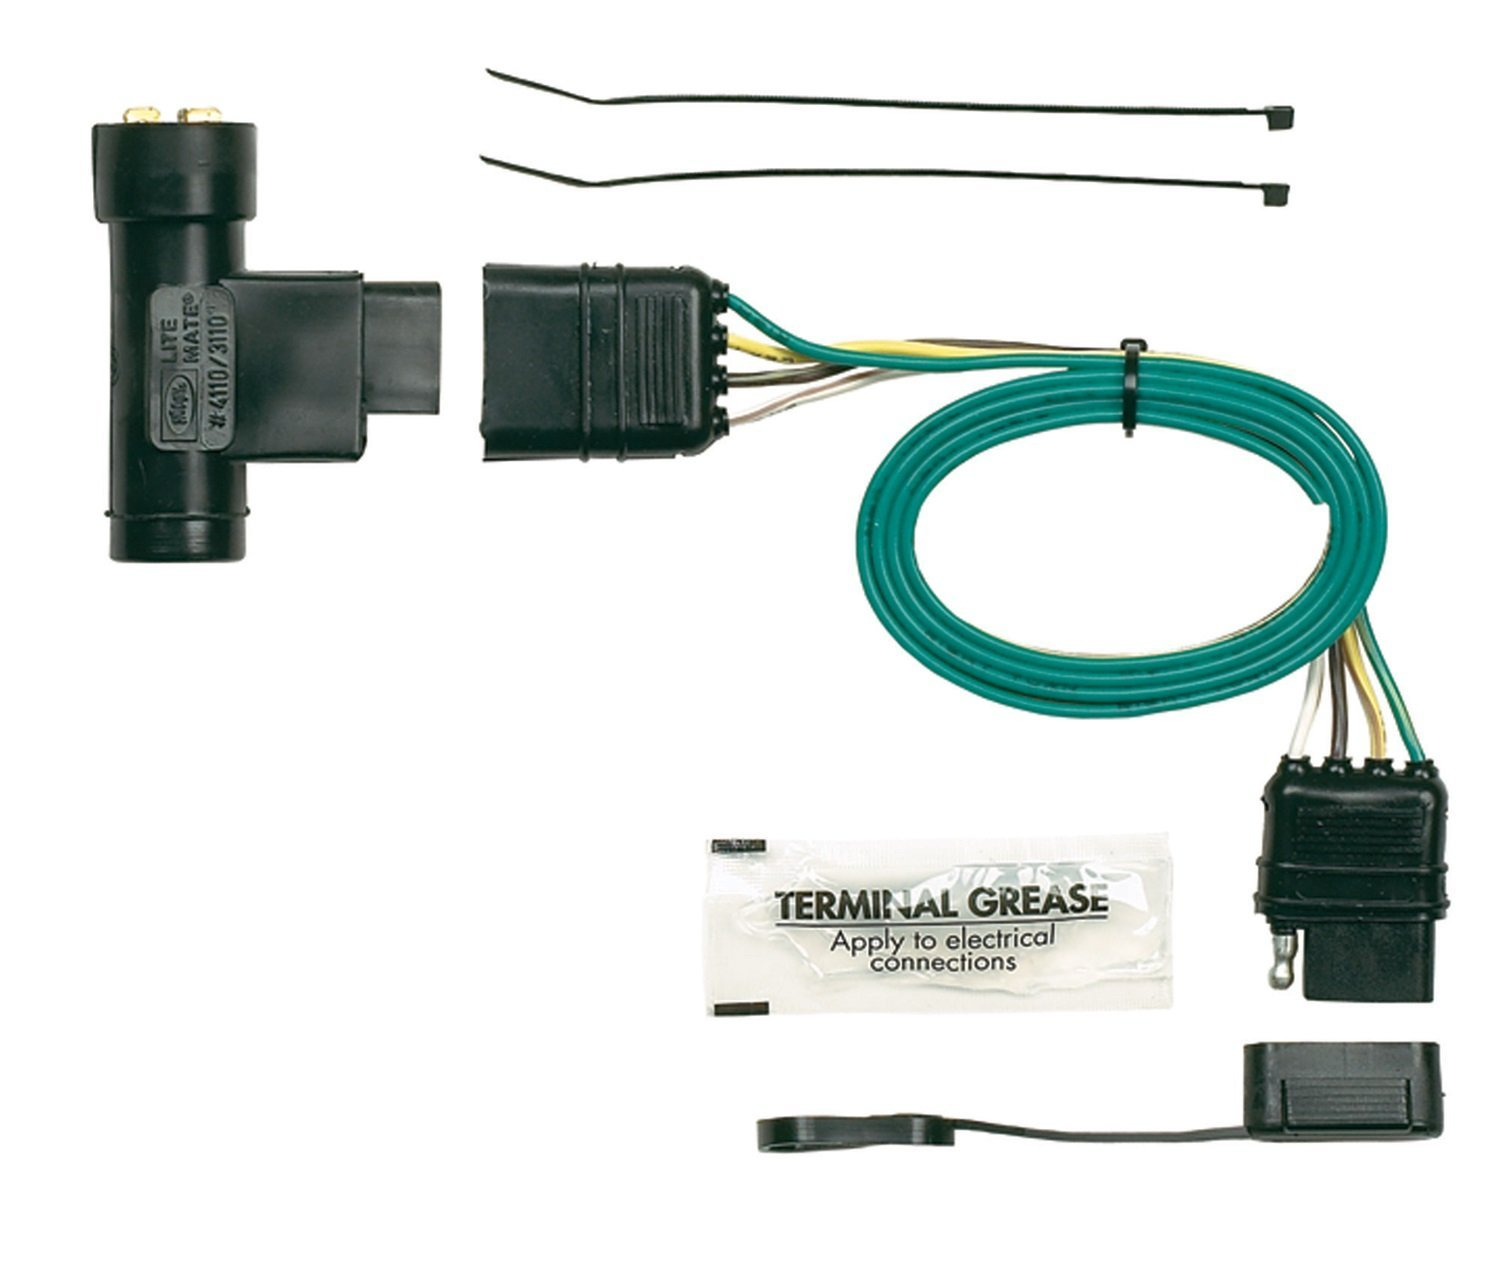 hight resolution of hopkins 41105 plug in simple vehicle wiring kit t connectors allow